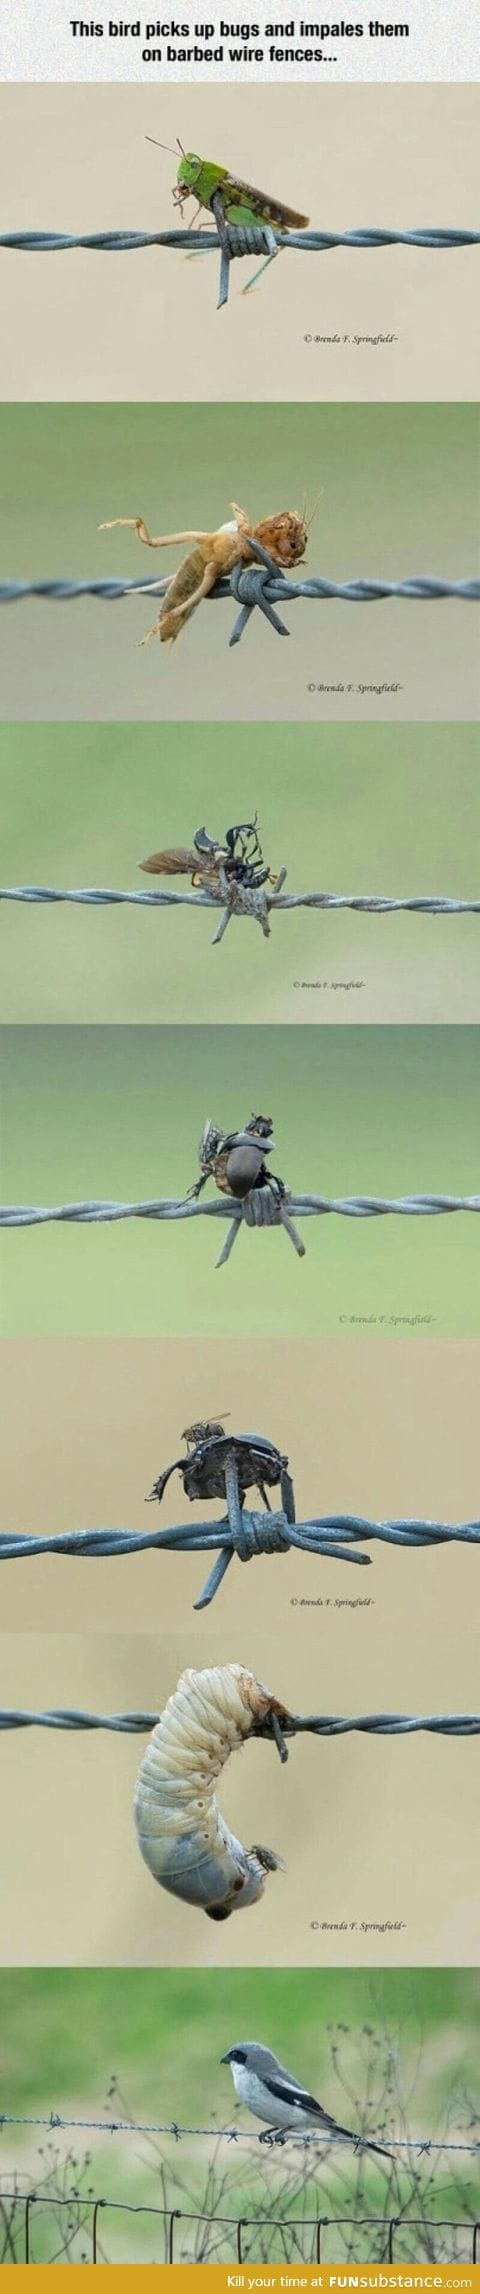 Bird impales its preys on a barb wire